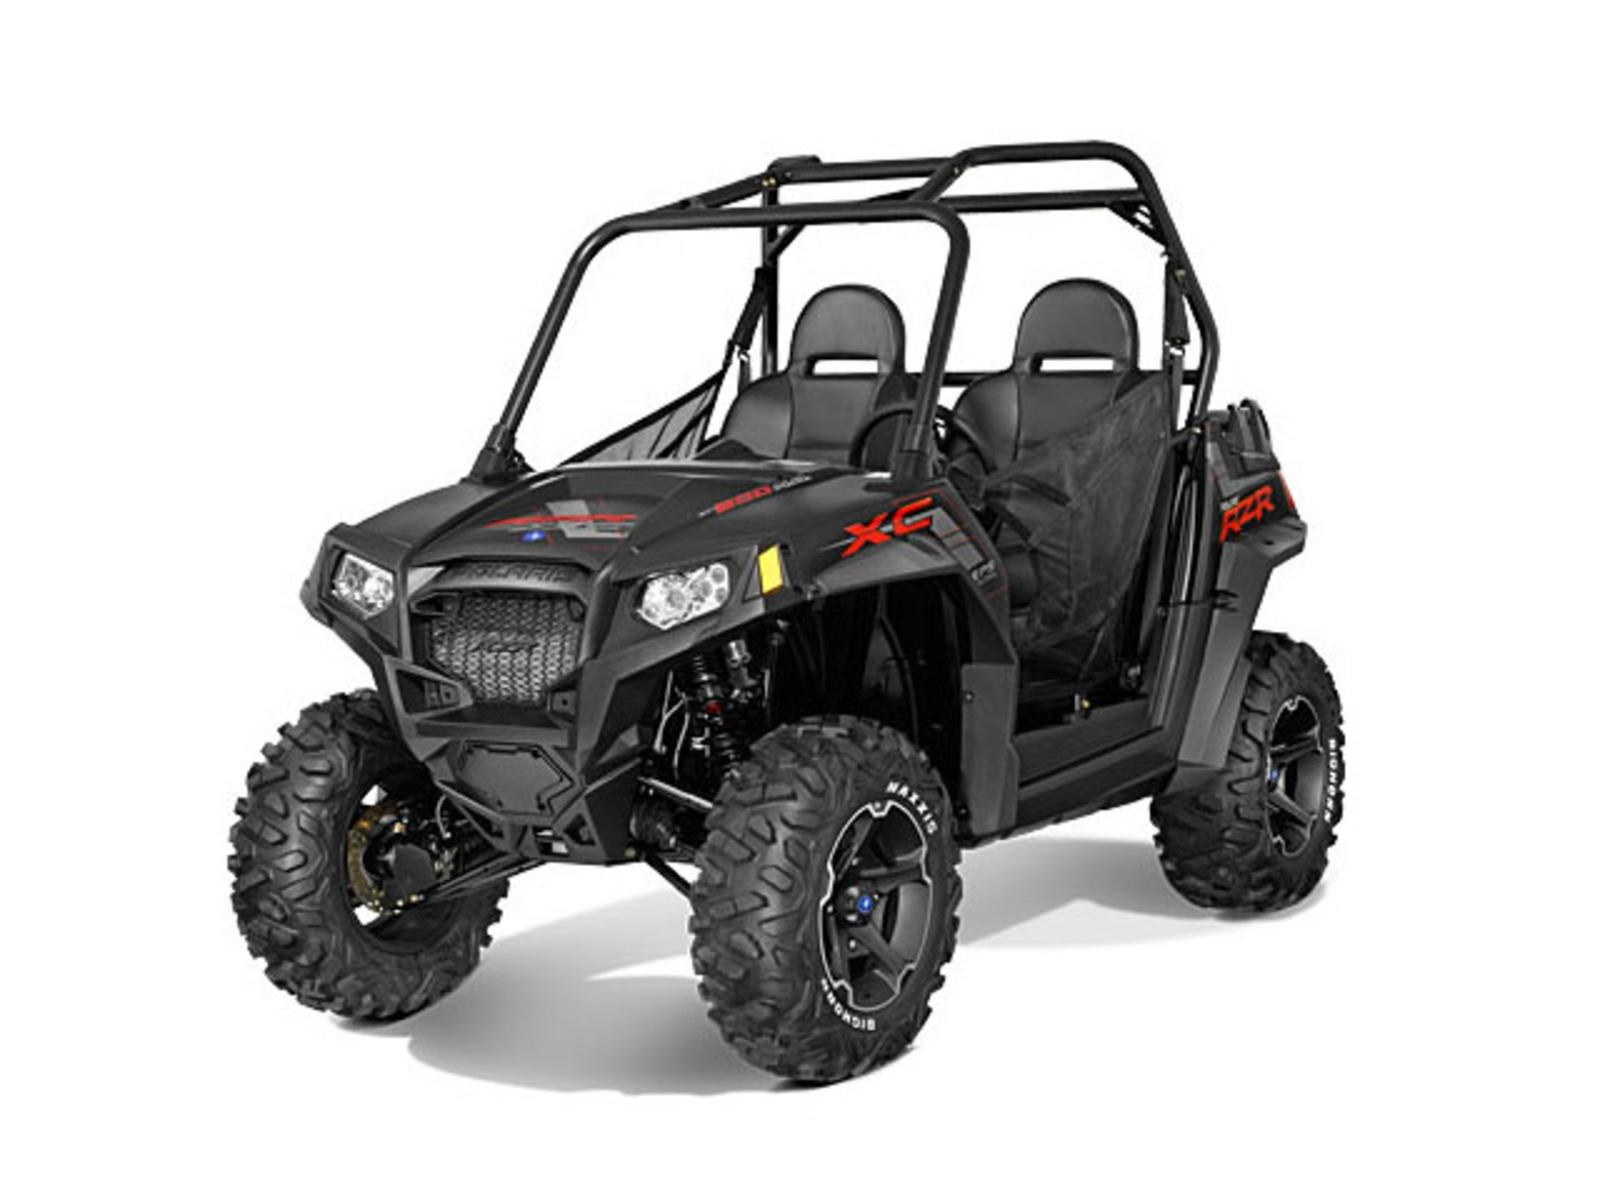 2014 polaris rzr 800 xc edition review top speed. Black Bedroom Furniture Sets. Home Design Ideas